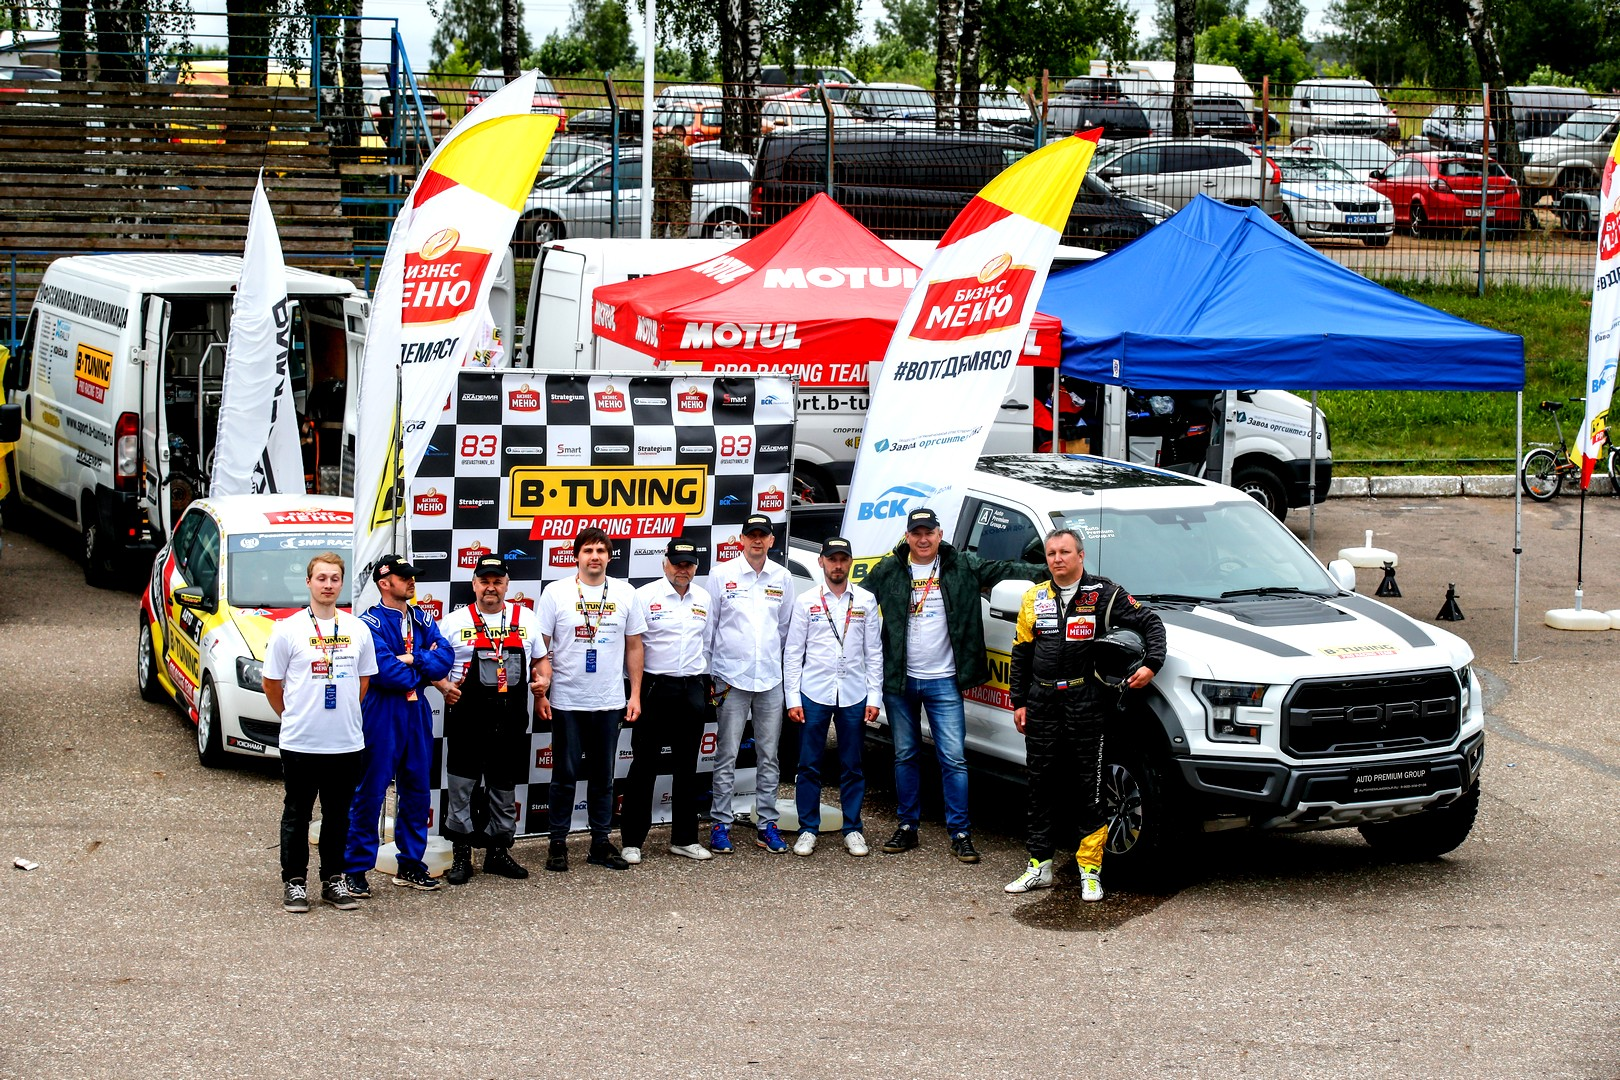 B-Tuning Racing Team 2020 1 этап СМП РСКГ Смоленск